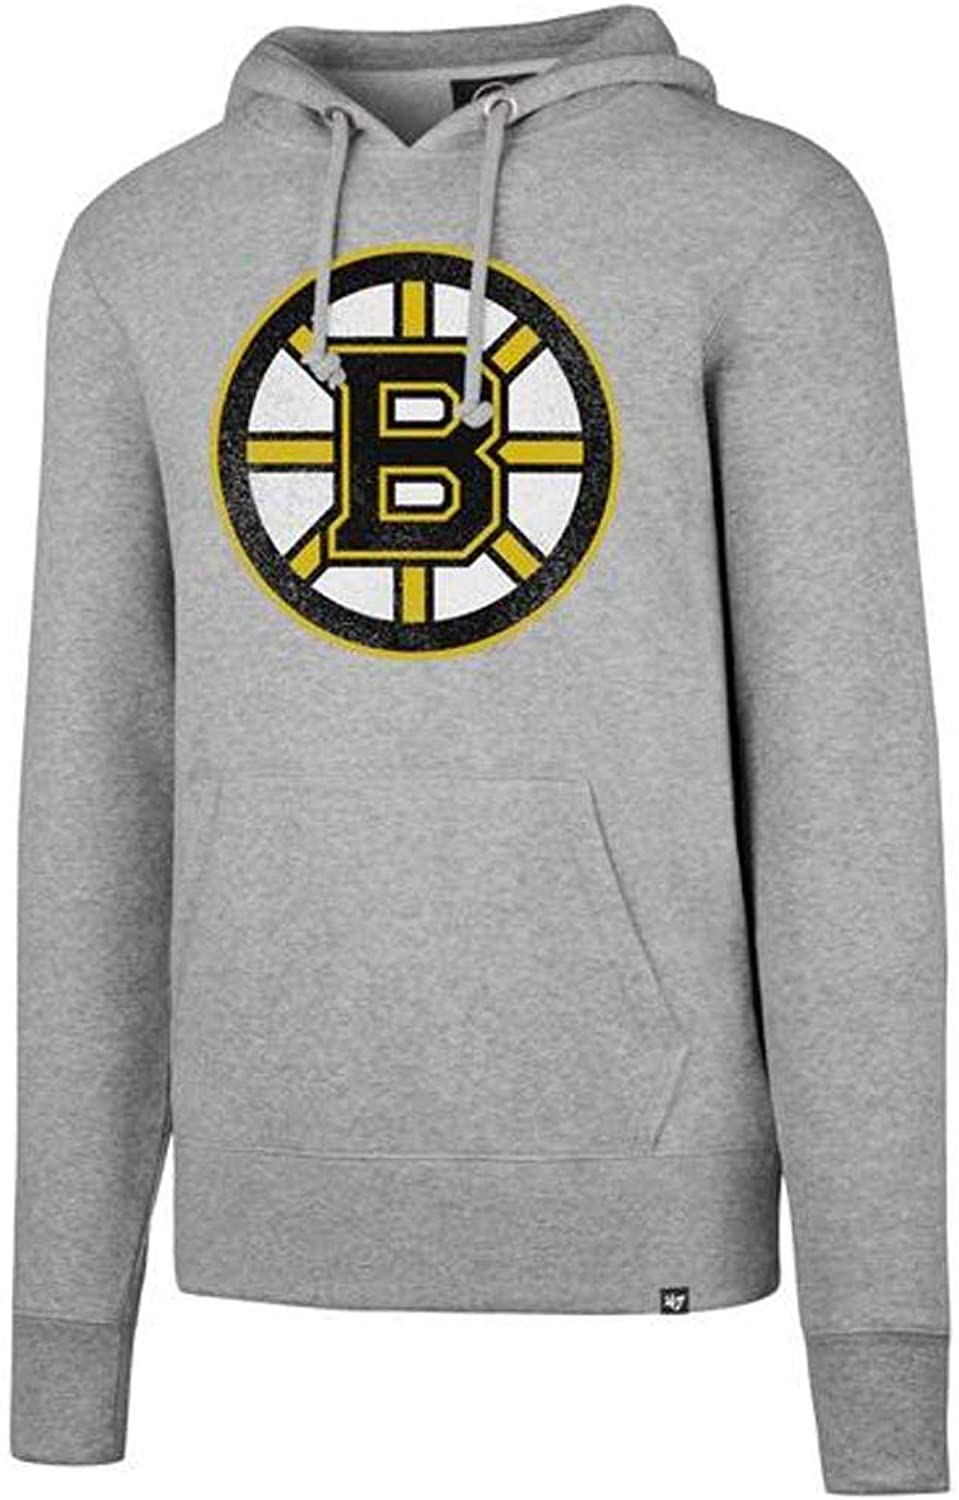 47 Forty Seven Brand Boston Bruins NHL Knockaround Headline Hoody Slate grau